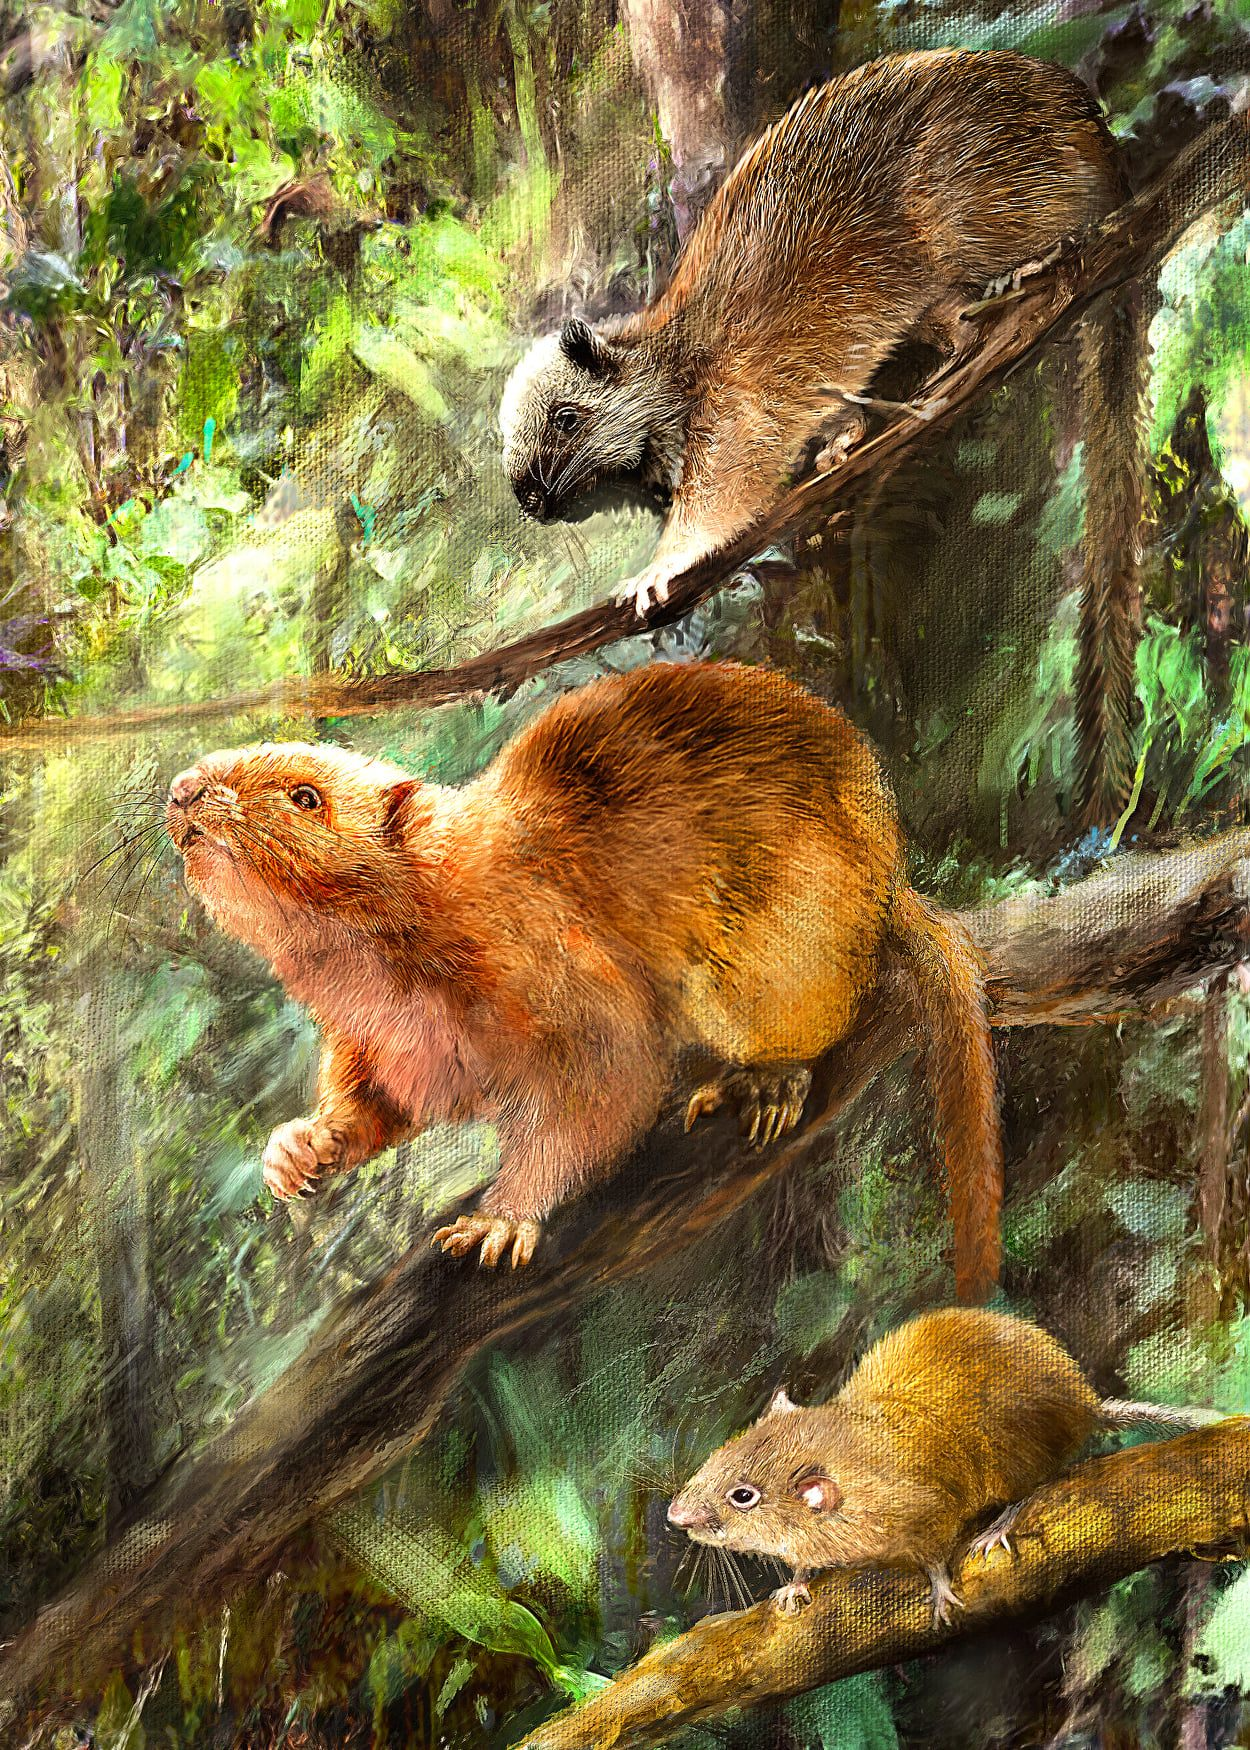 Artist's conception of the three extinct cloud rats, based on their living relatives. From the top, Crateromys, Carpomys, and Batomys.